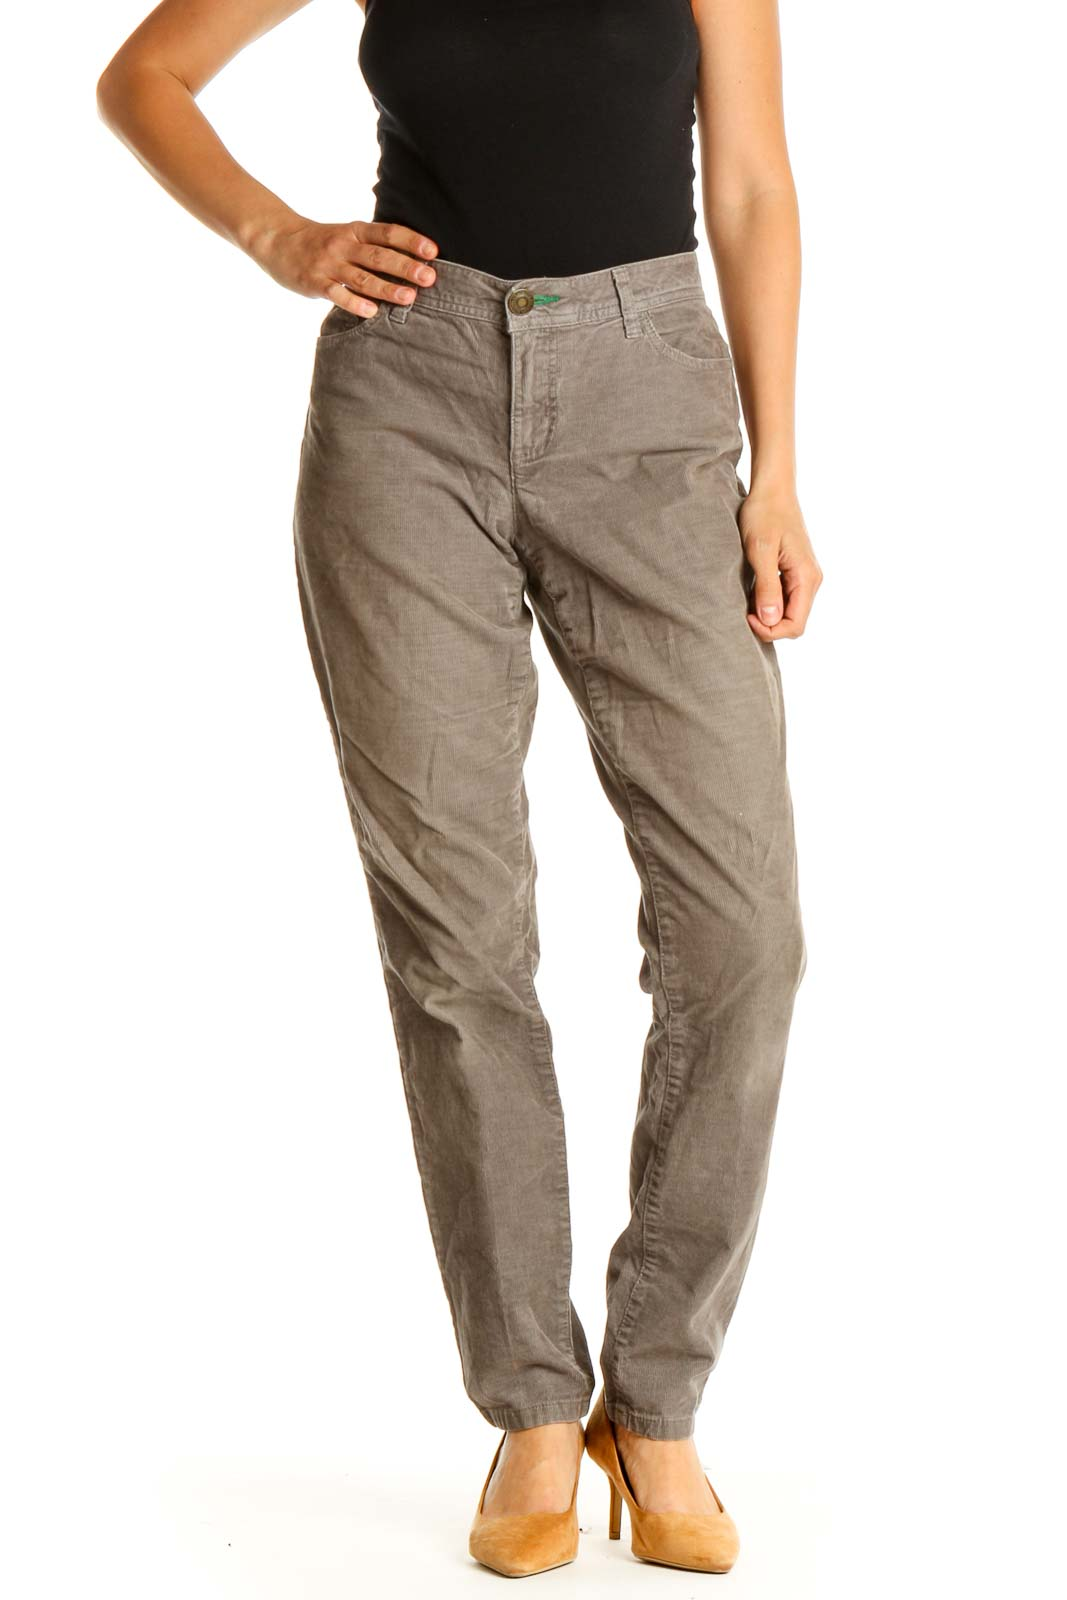 Brown Solid Casual Cargos Pants Front